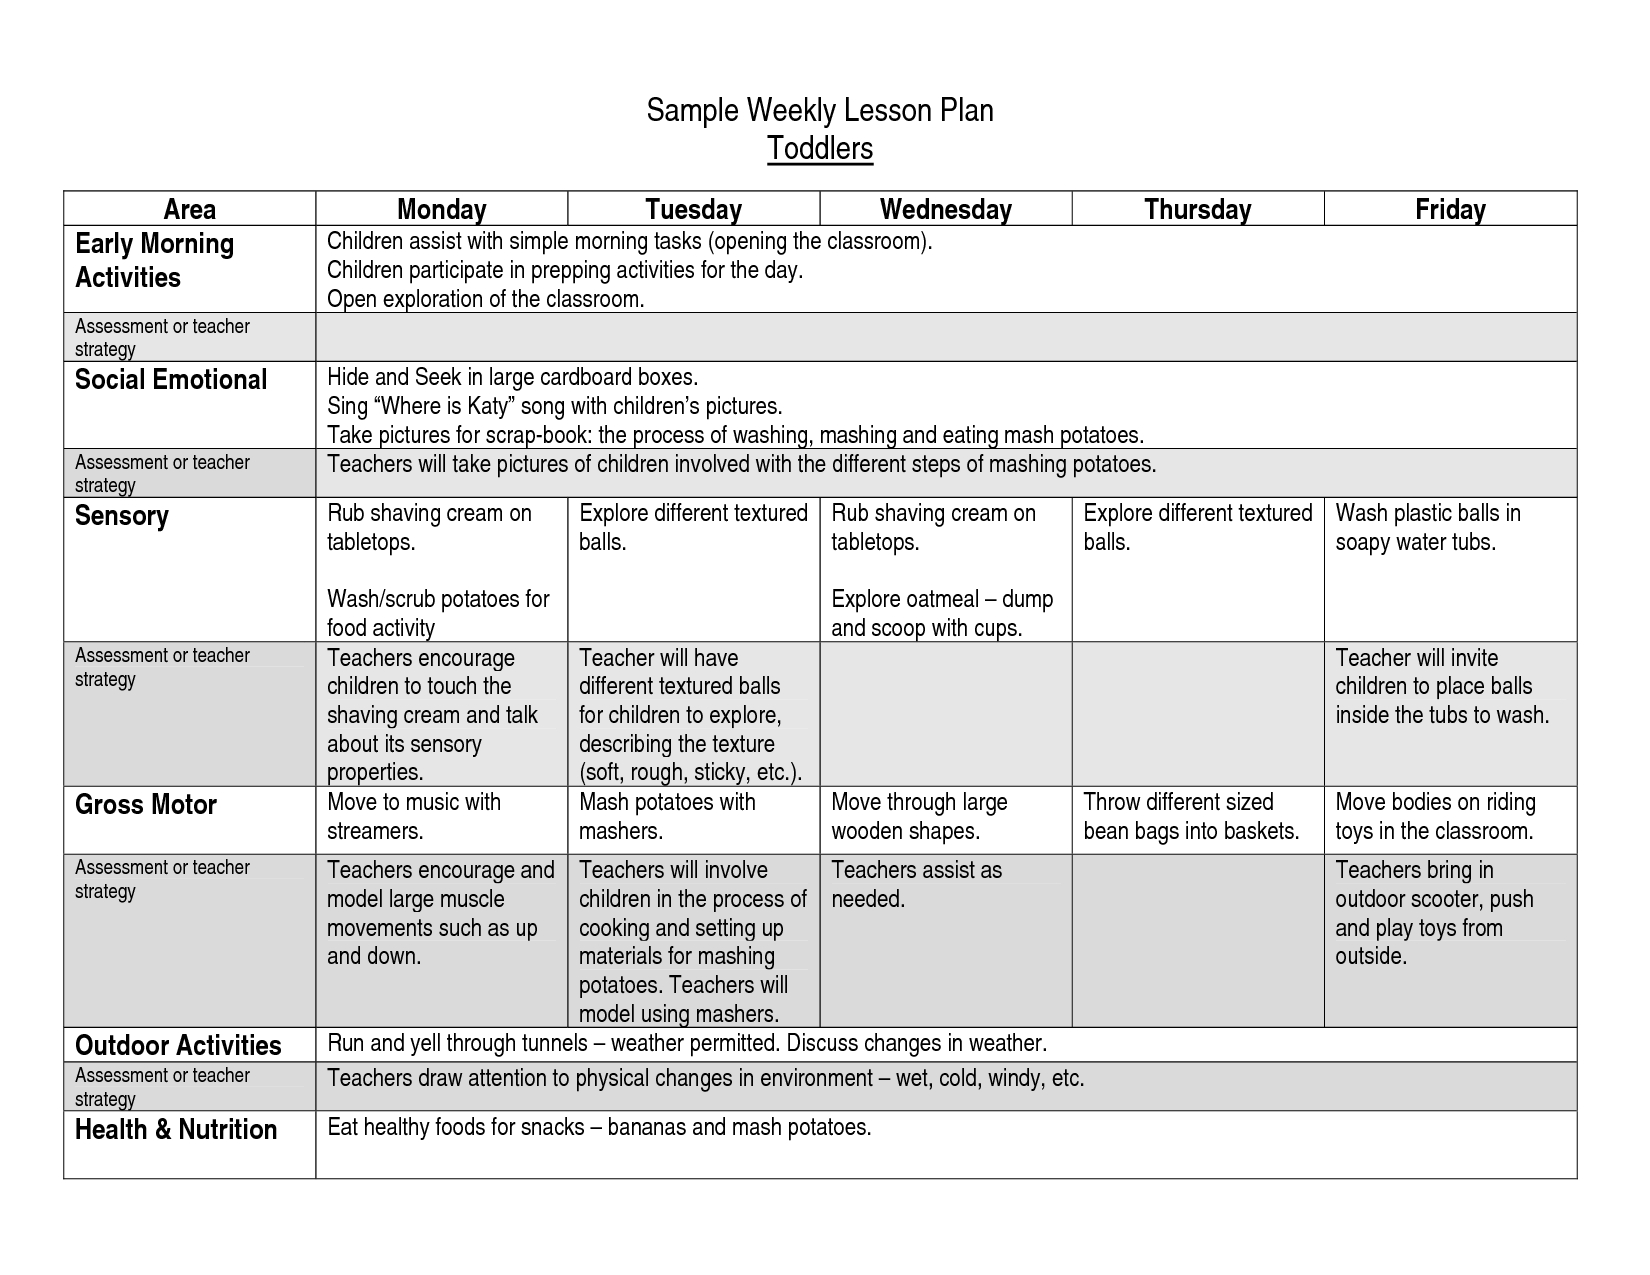 Free Weekly Lesson Plan Template And Teacher Resources - Free Printable Preschool Teacher Resources